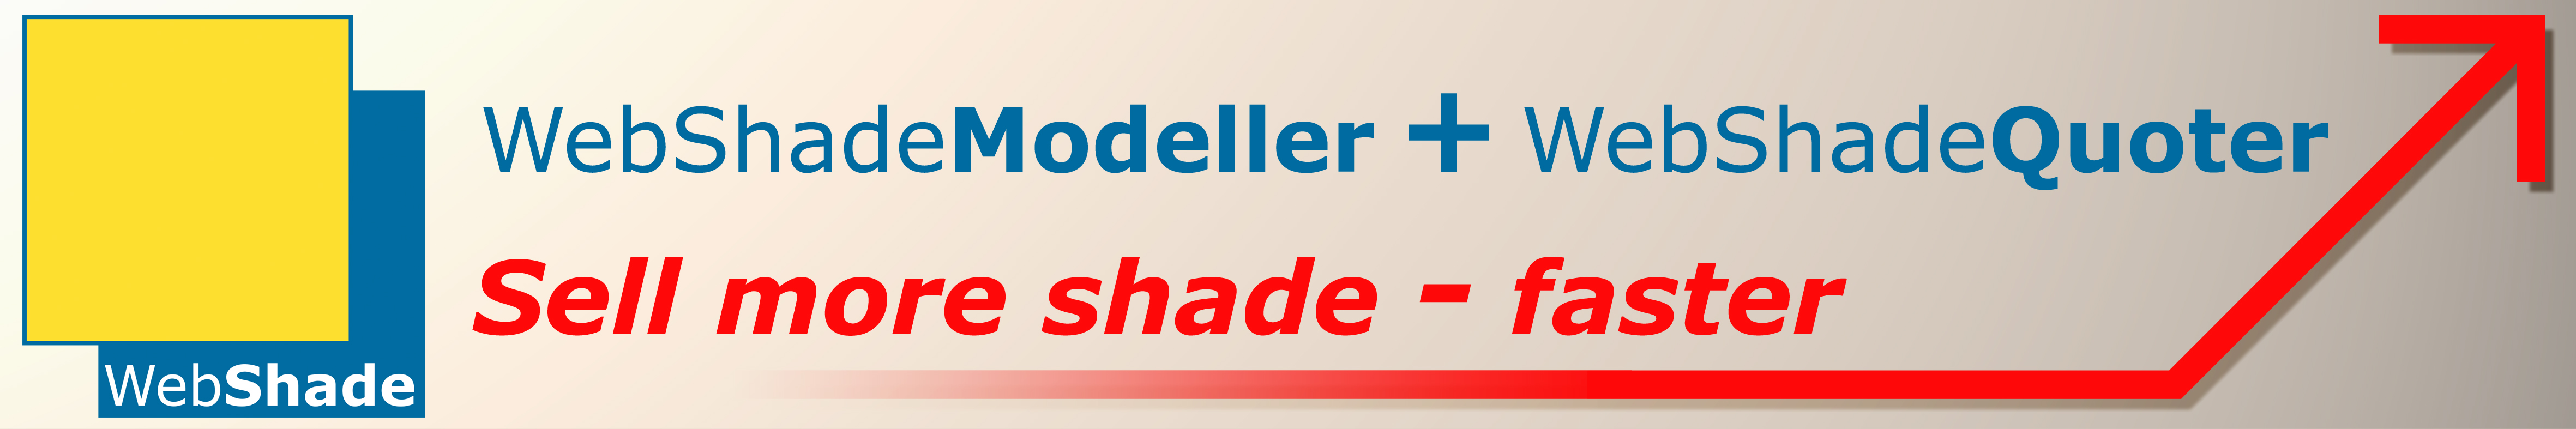 Sell More Shade Faster